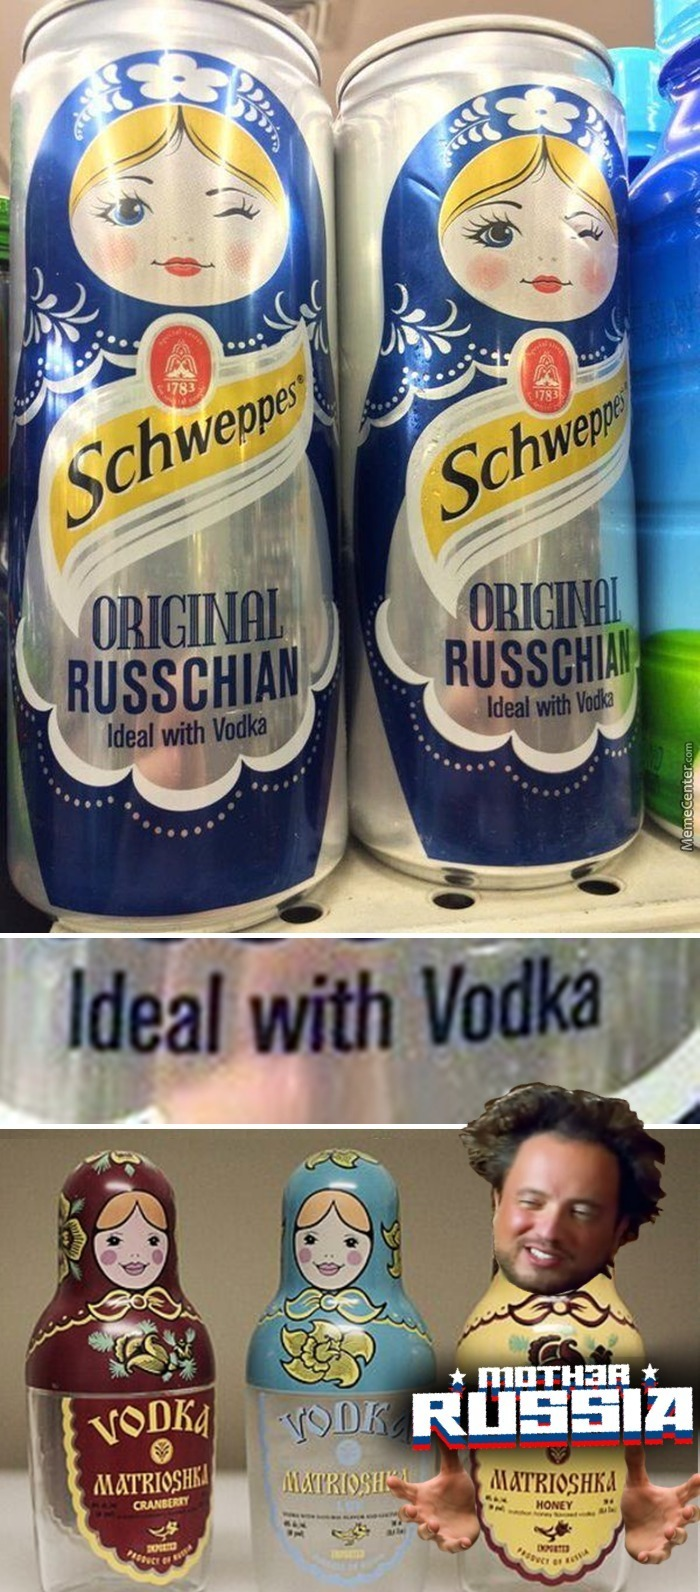 The Only Thing Good With Vodka Is More Vodka, Duh...